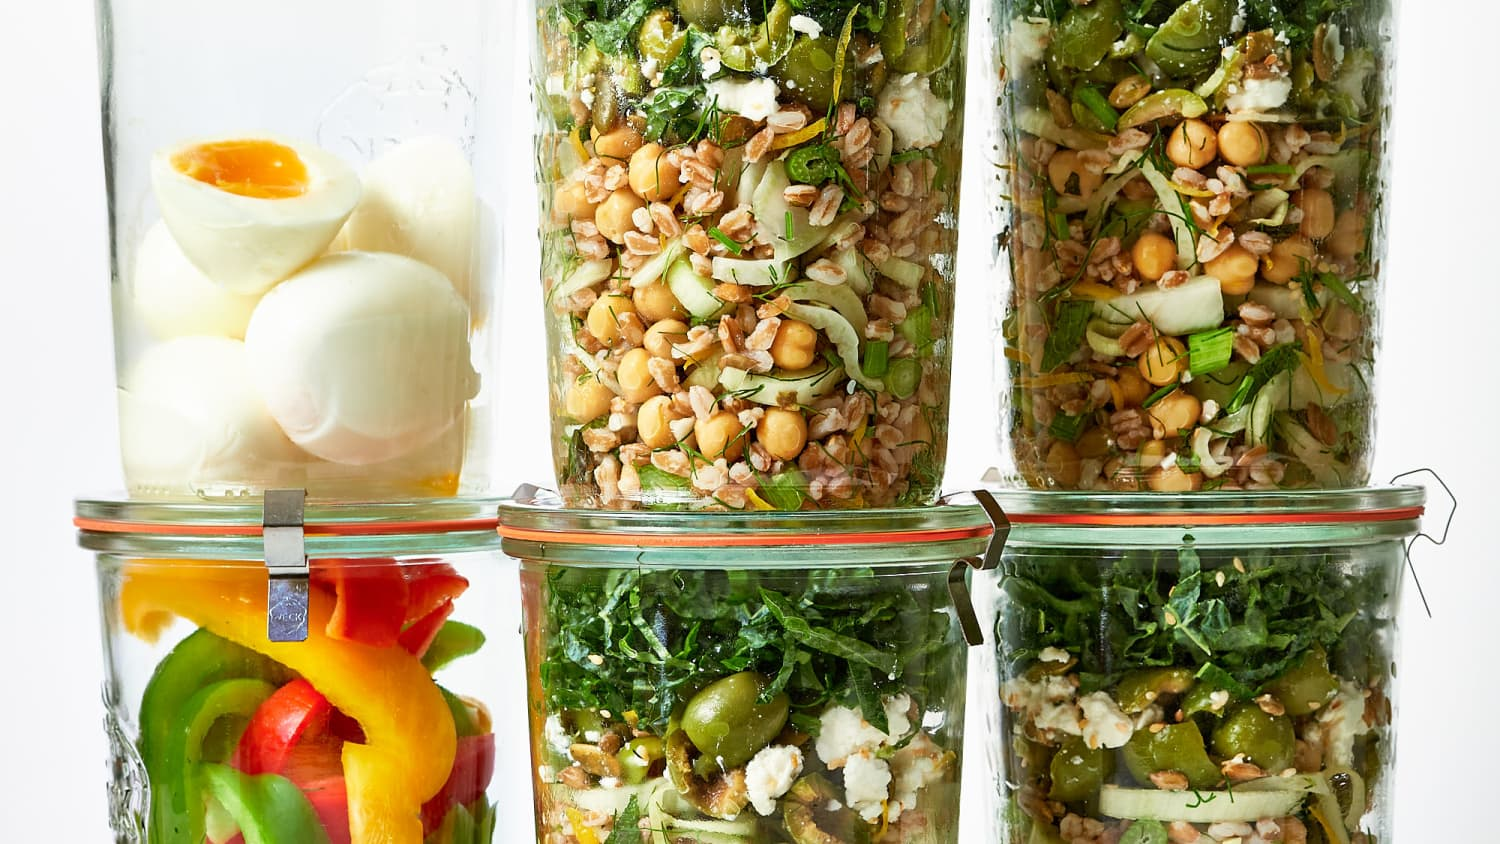 Vegetarian Meal Prep - One Hour Recipe Plans | Kitchn